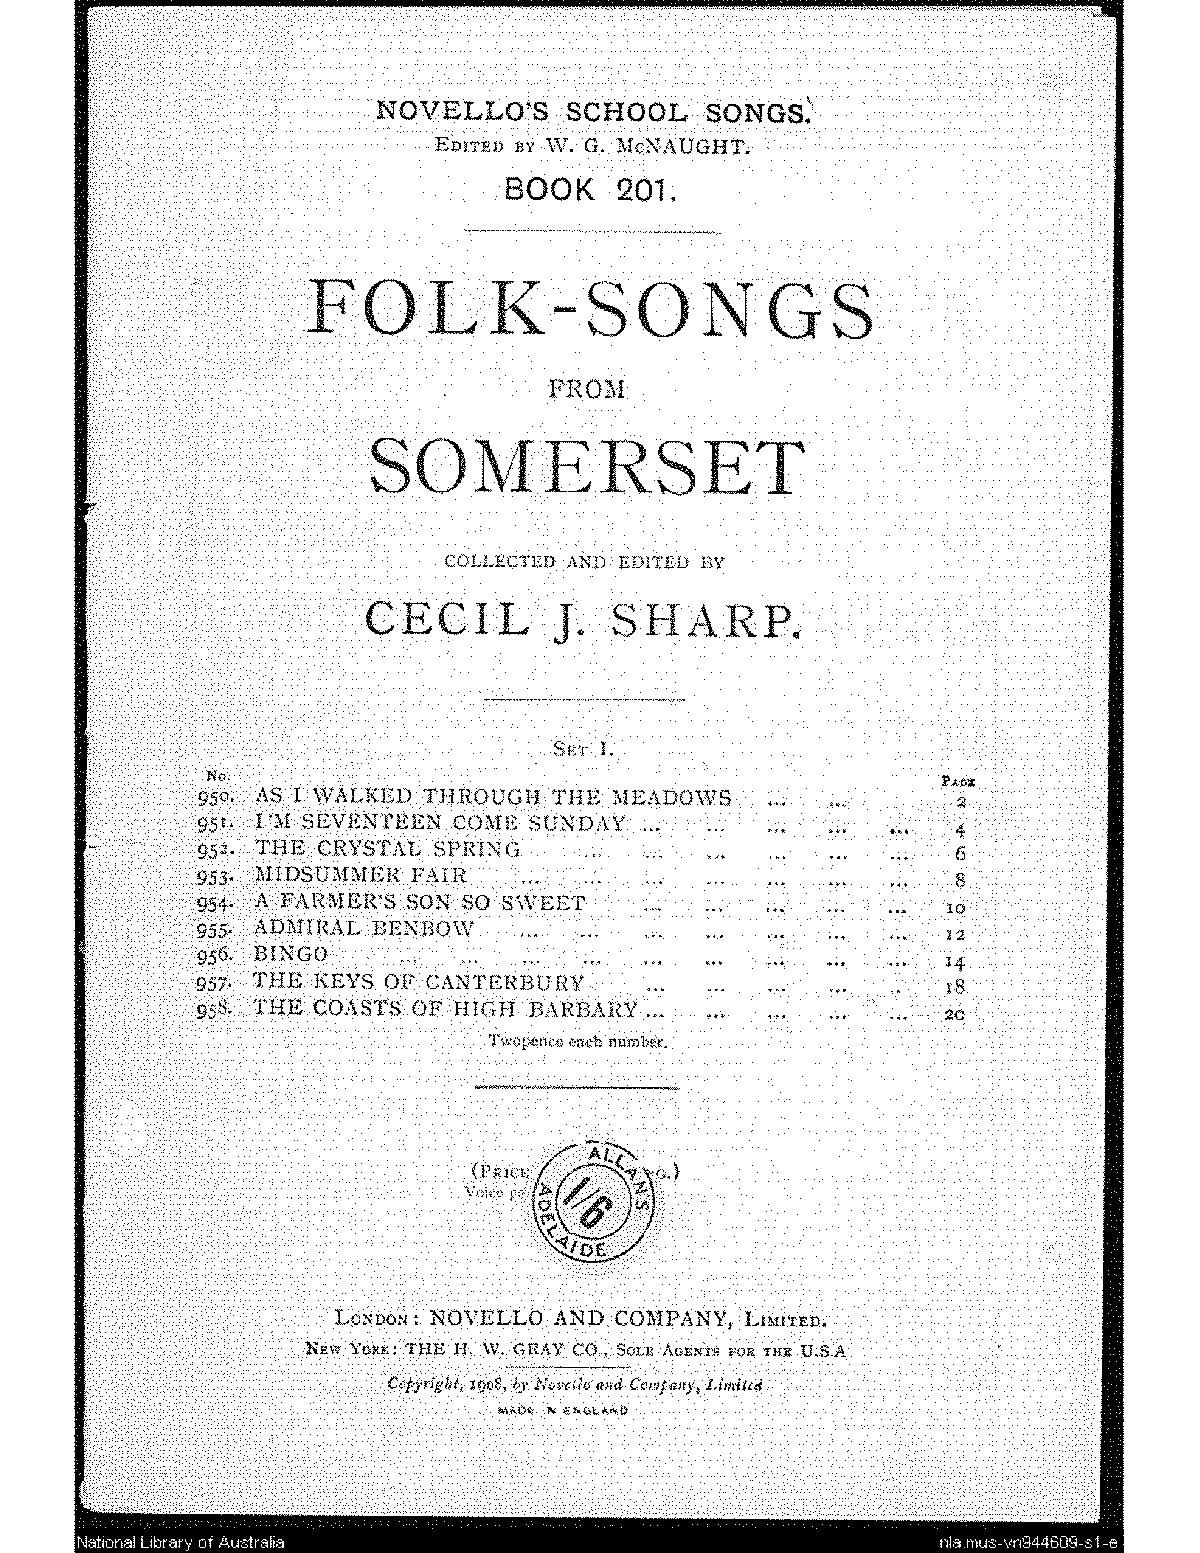 PMLP74763-sharp folks songs somerset set 1.pdf